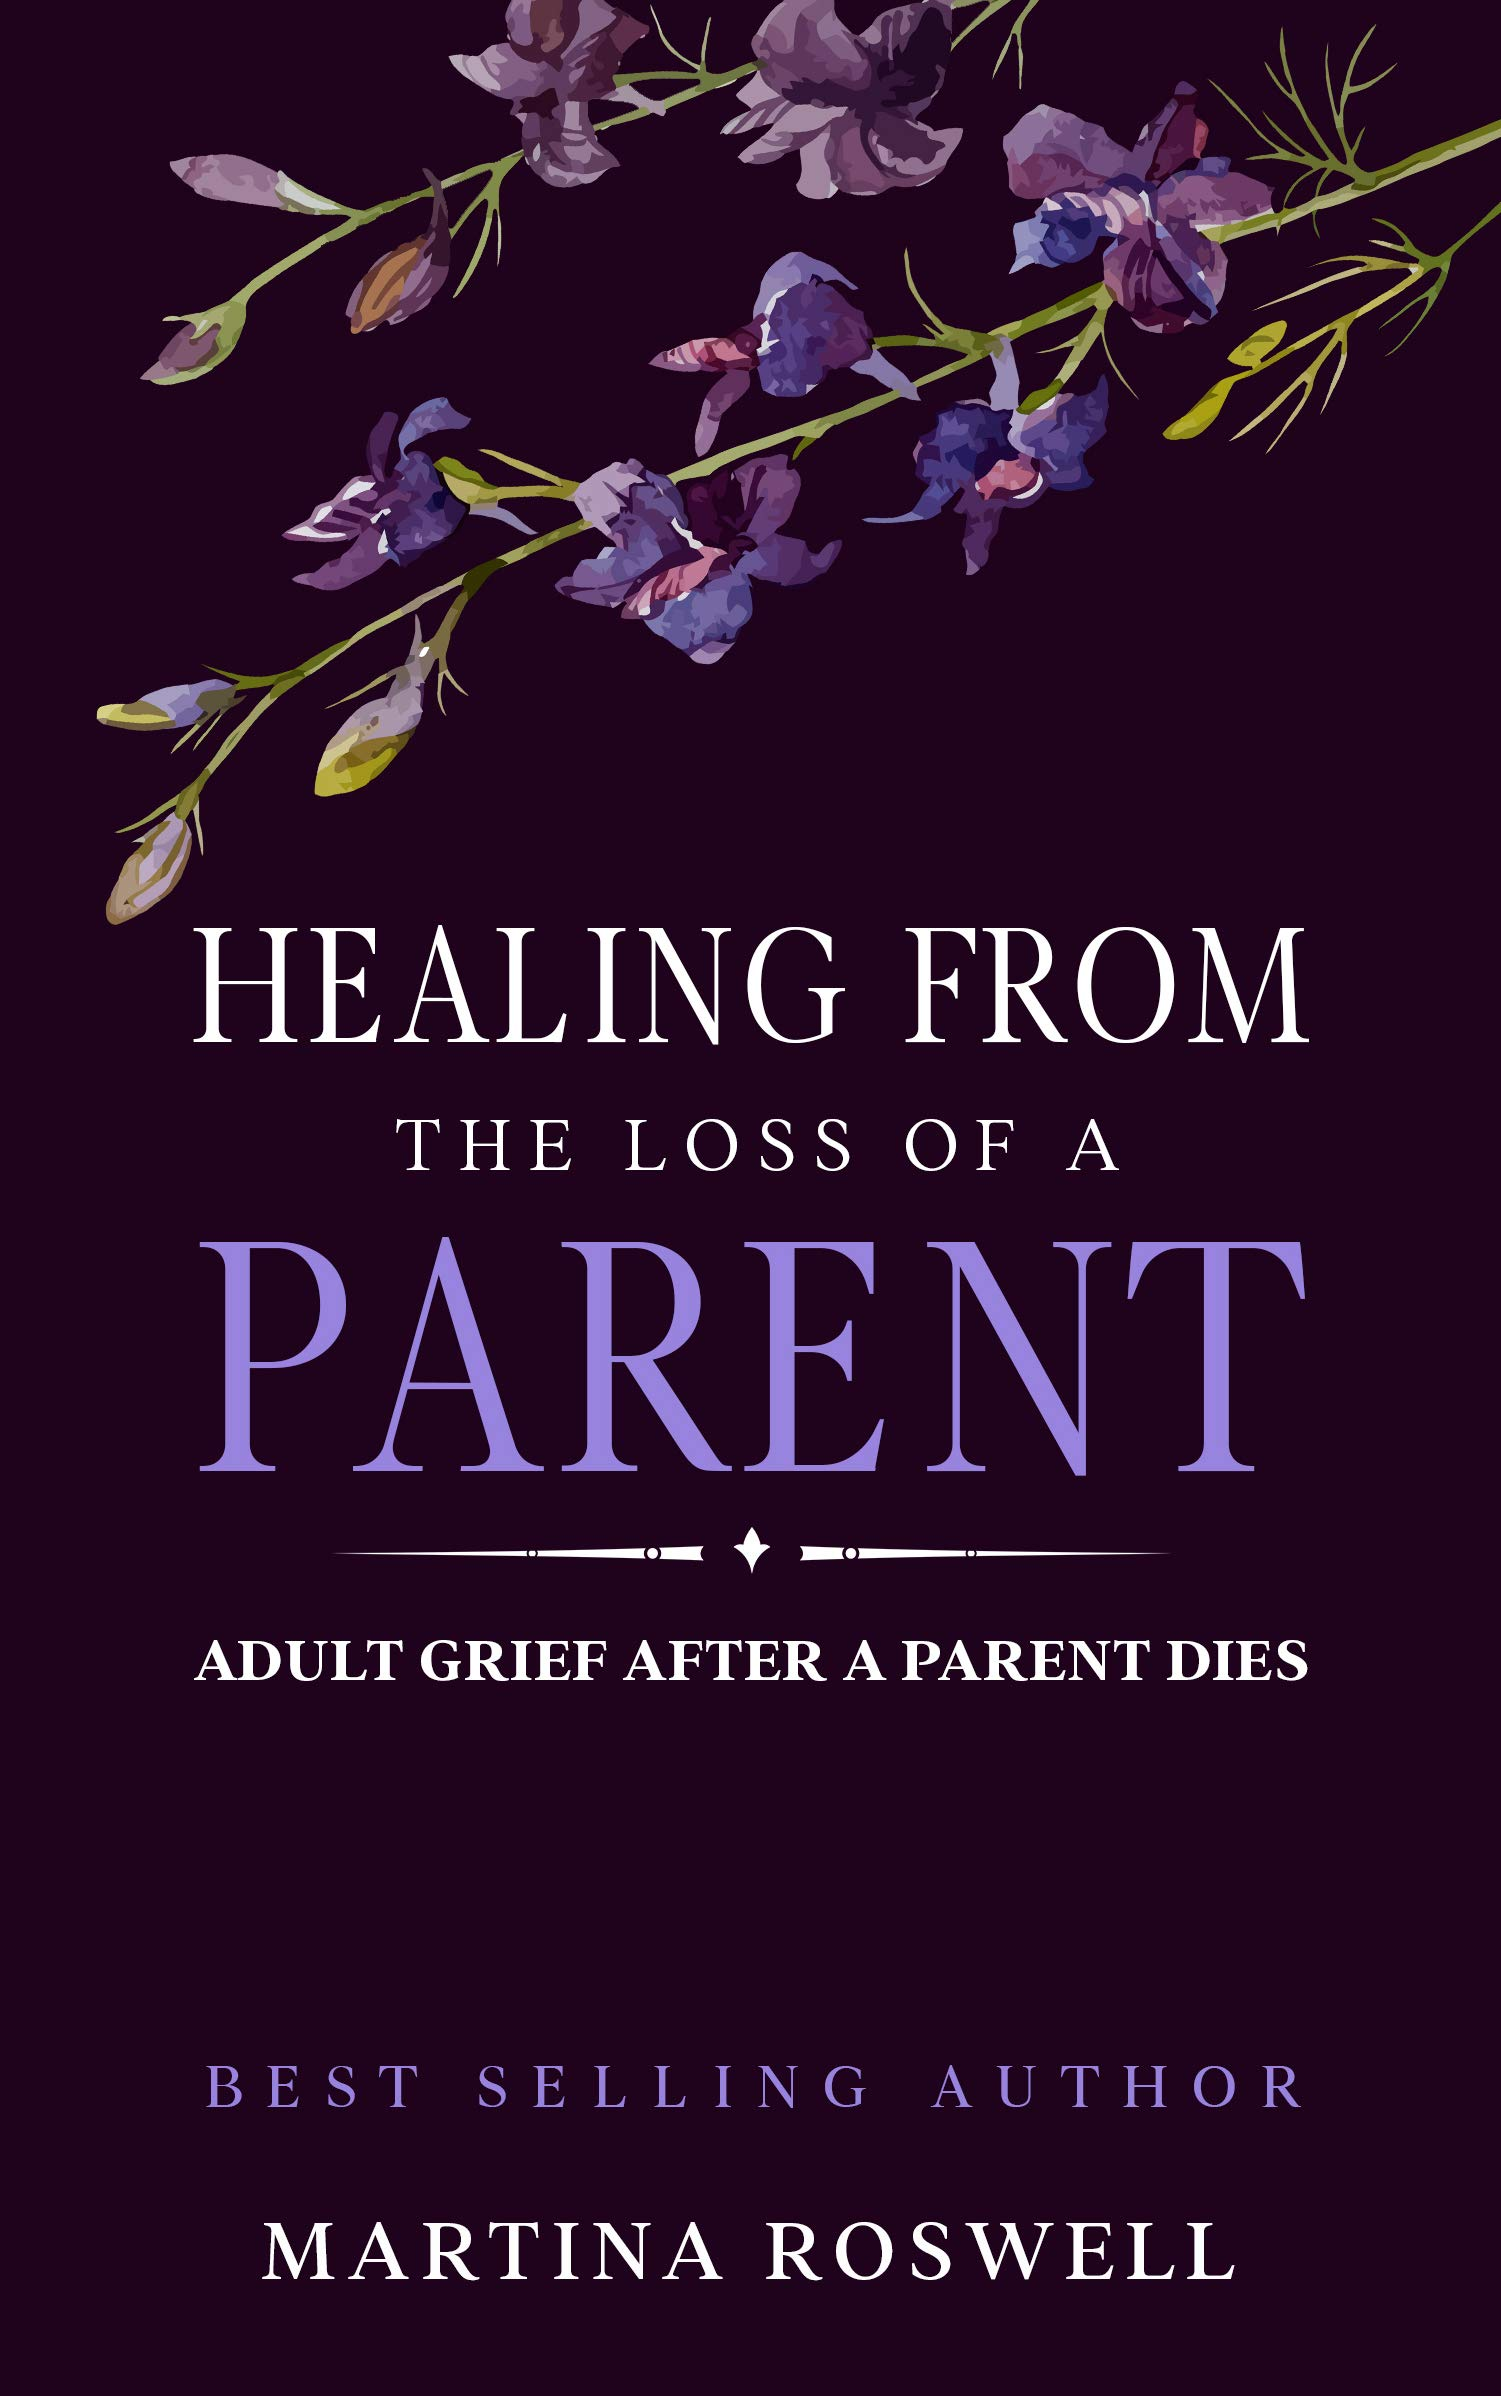 Healing From The Loss Of A Parent: Adult Grief When A Parent Dies. How To Recover And Find Strength After Losing Your Beloved Parent.